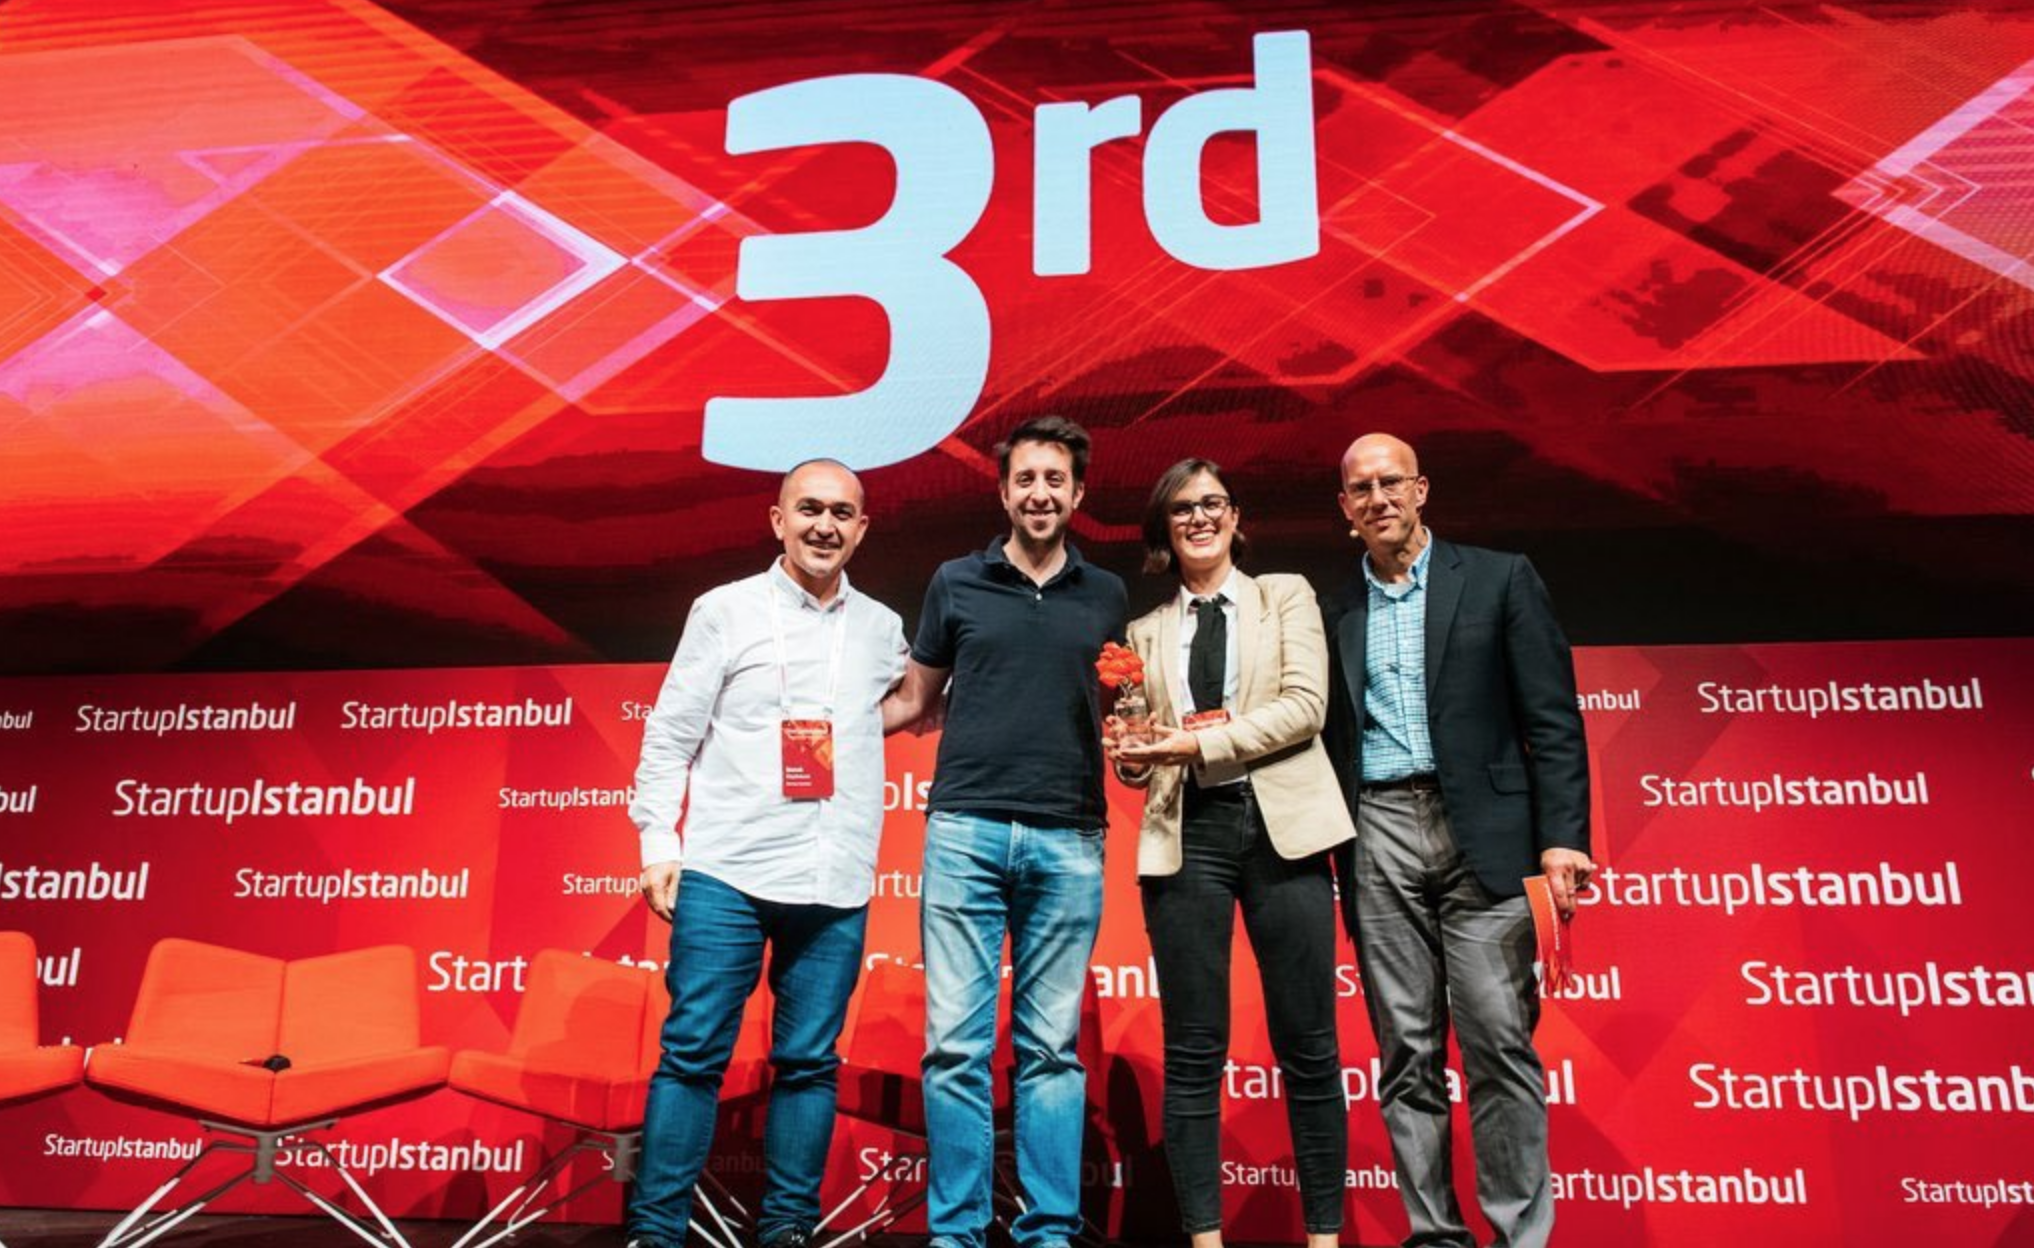 Iyris Wins 3rd Place in the Istanbul Startup 2018 - 26/10/18Recently Derya Baran from the Iyris team participated in the Istanbul Statup 2018 competition and they finished third overall! Great Work!